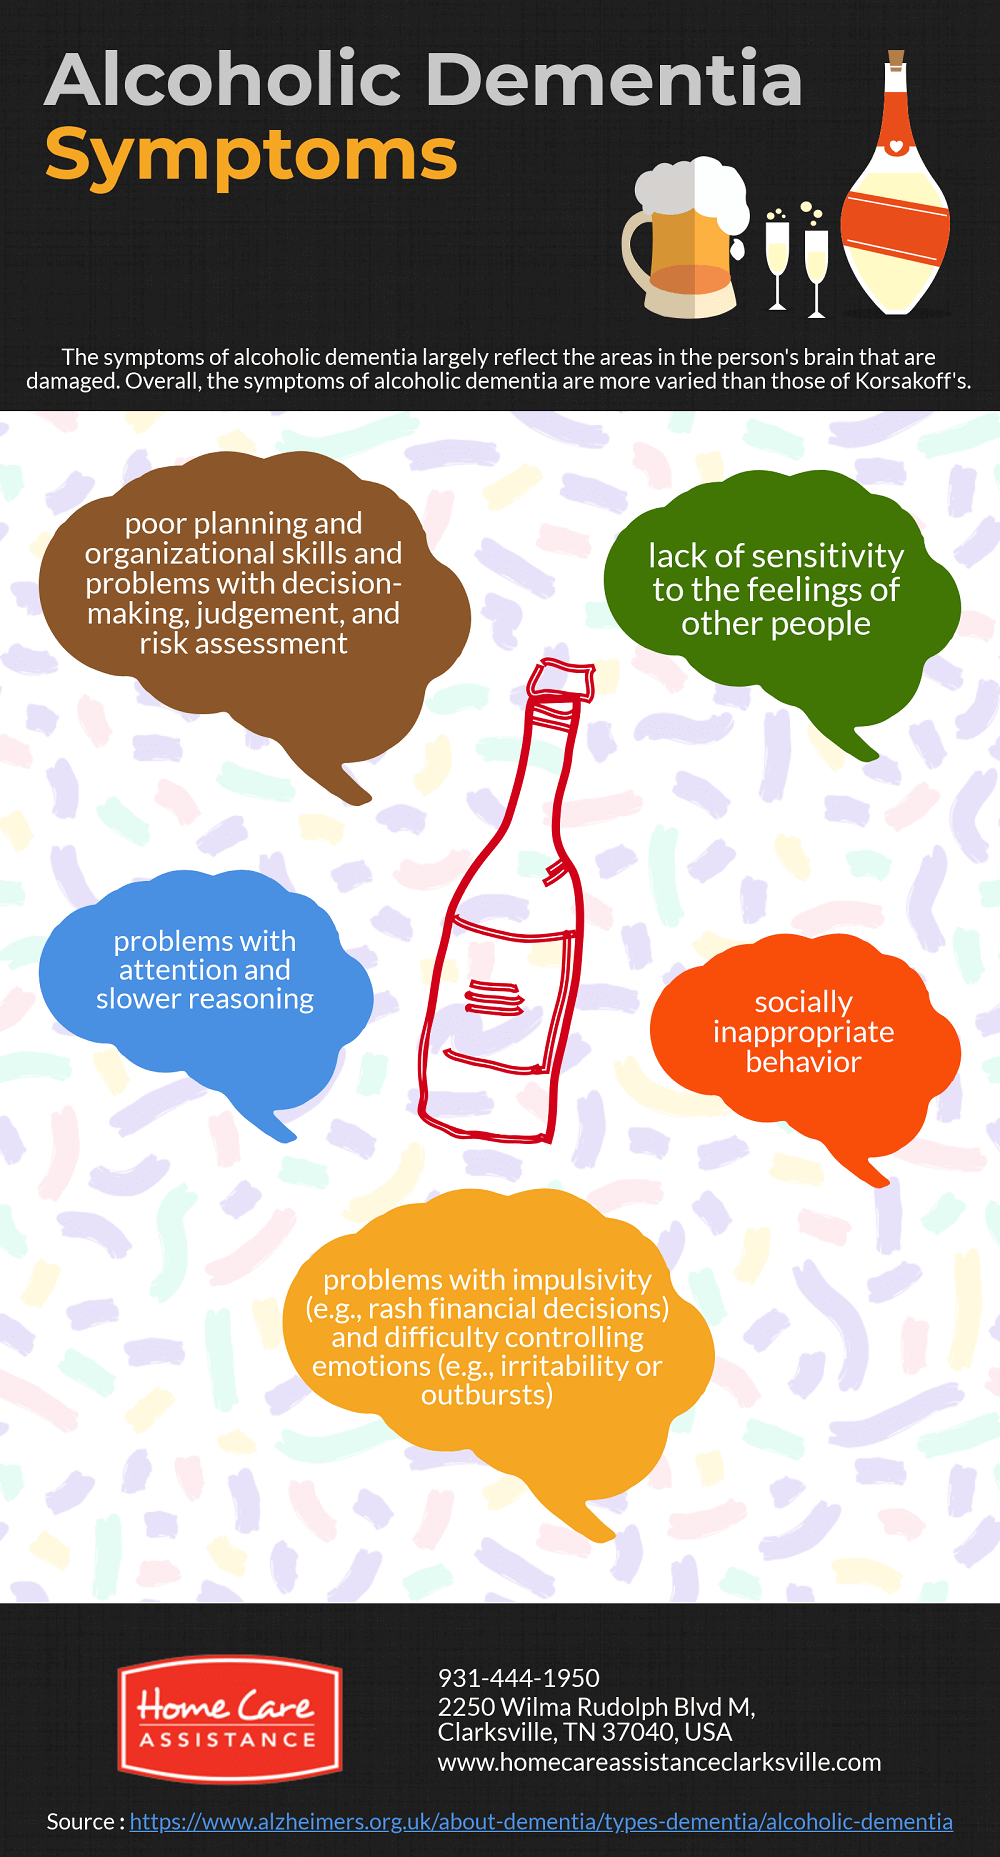 What Are the Symptoms of Alcoholic Dementia? [Infographic]